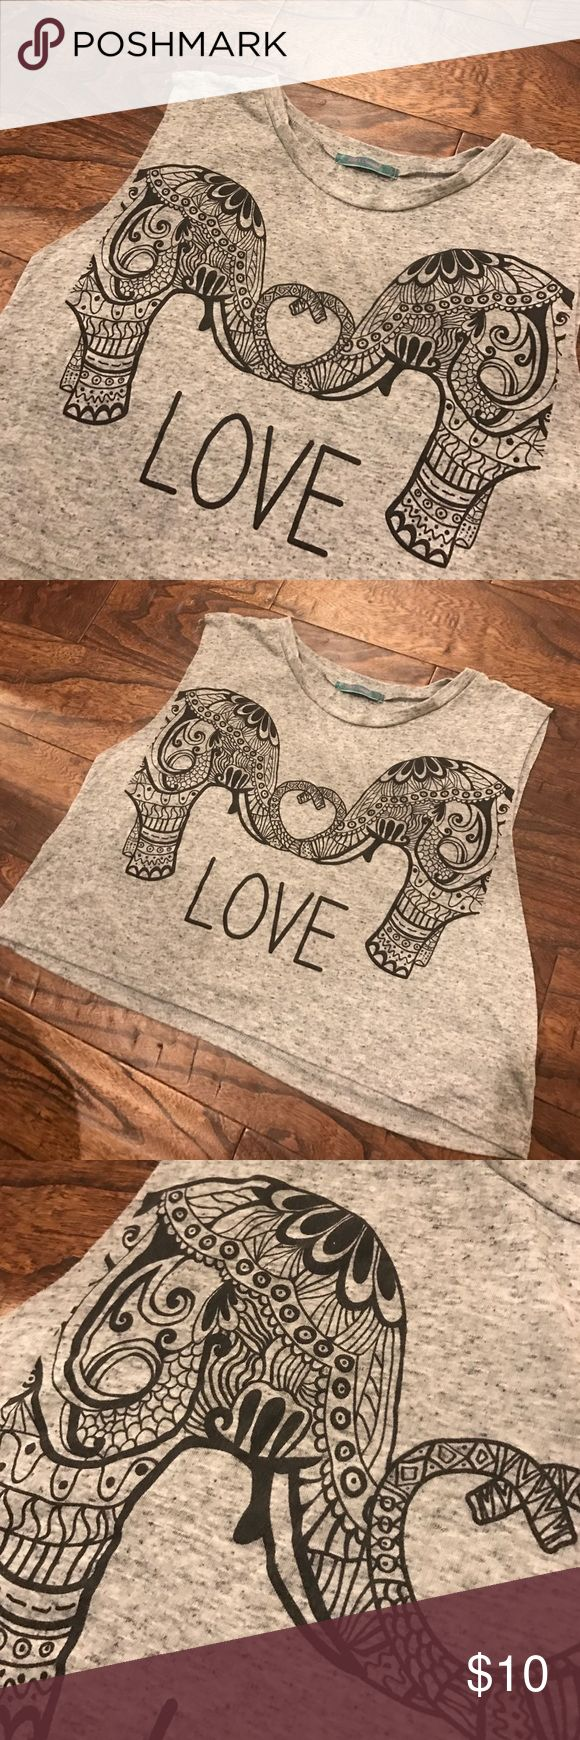 Aztec Elephant Love Crop Top Super adorable grey speckled, Aztec elephant crop top! Gently worn. Perfect for a bathing suit cover up at the beach or a concert! Julie's Closet Tops Crop Tops